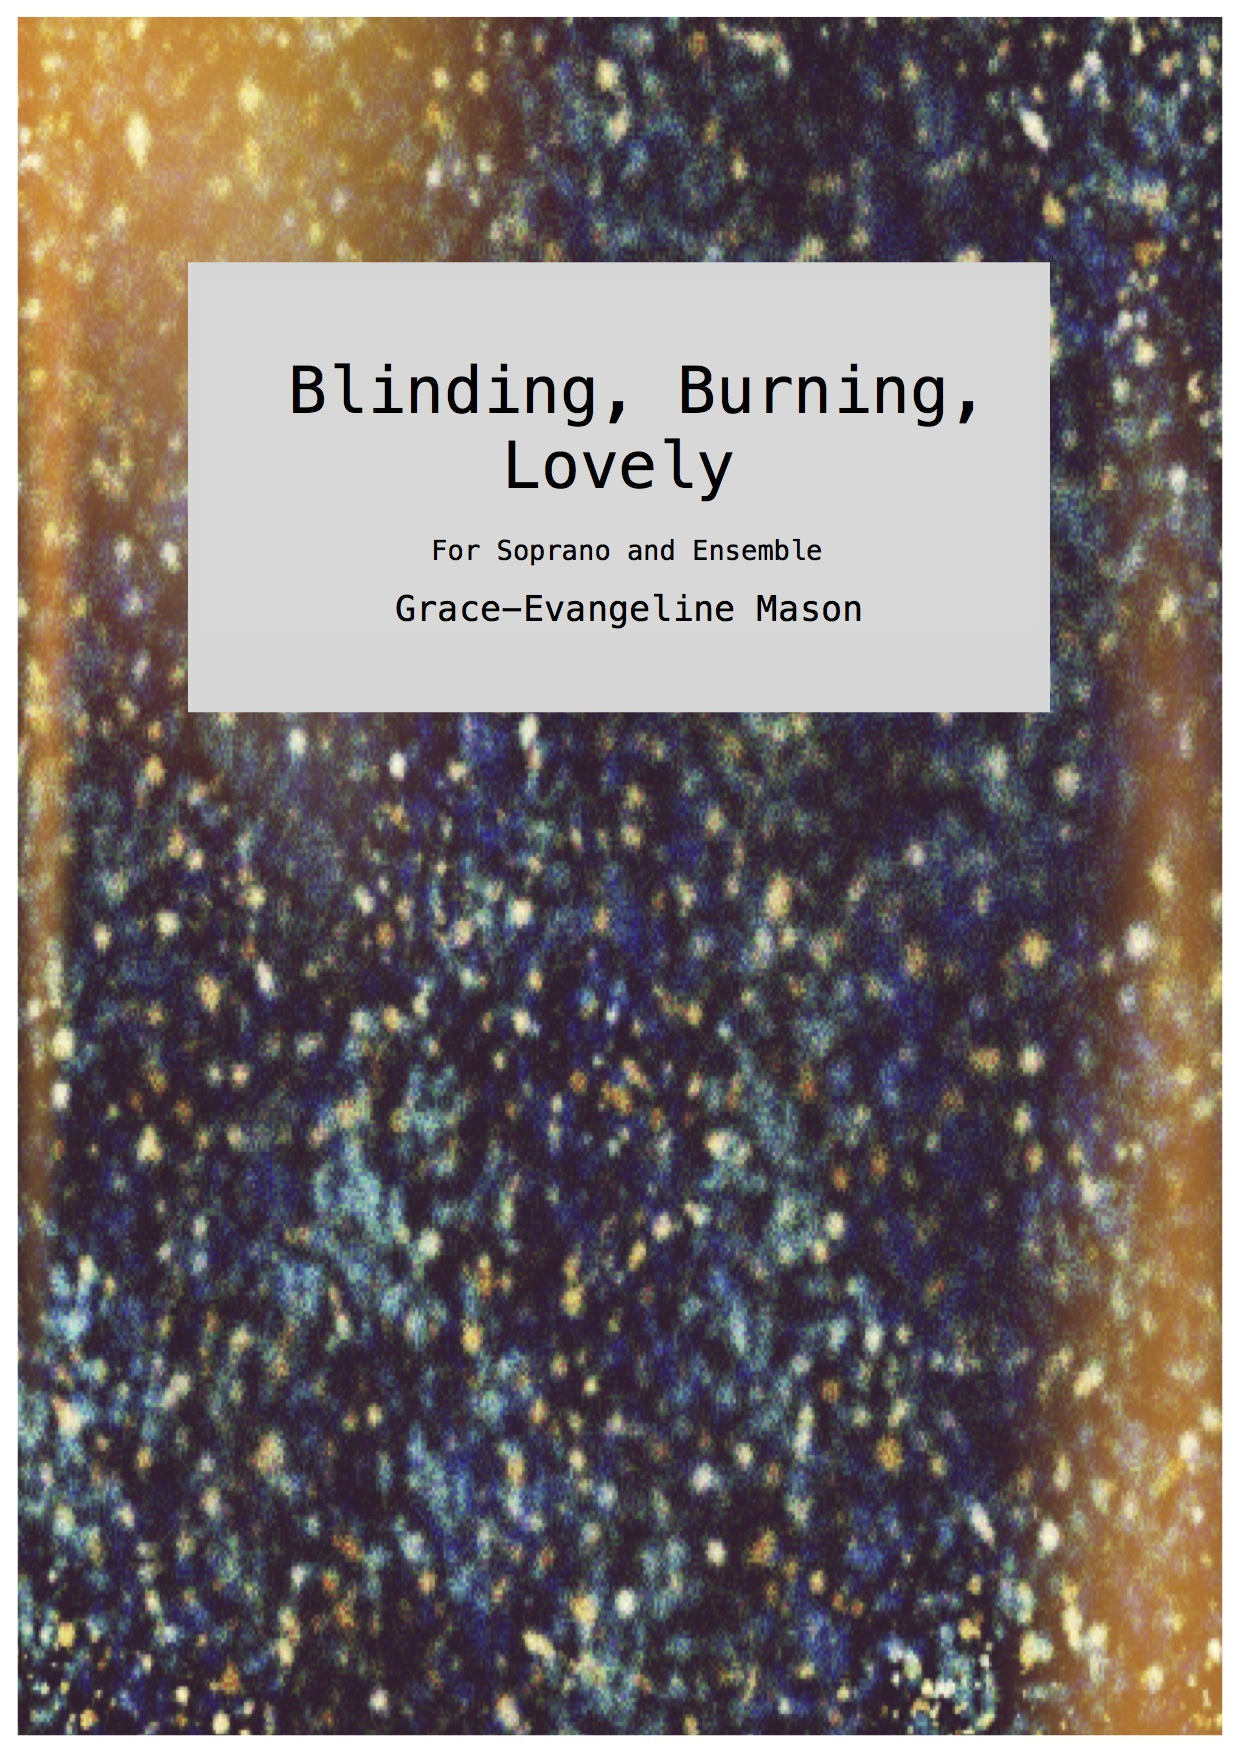 'Blinding, Burning, lovely' (2017) - for soprano, violin, viola, 'cello and pianoDuration: 3'30